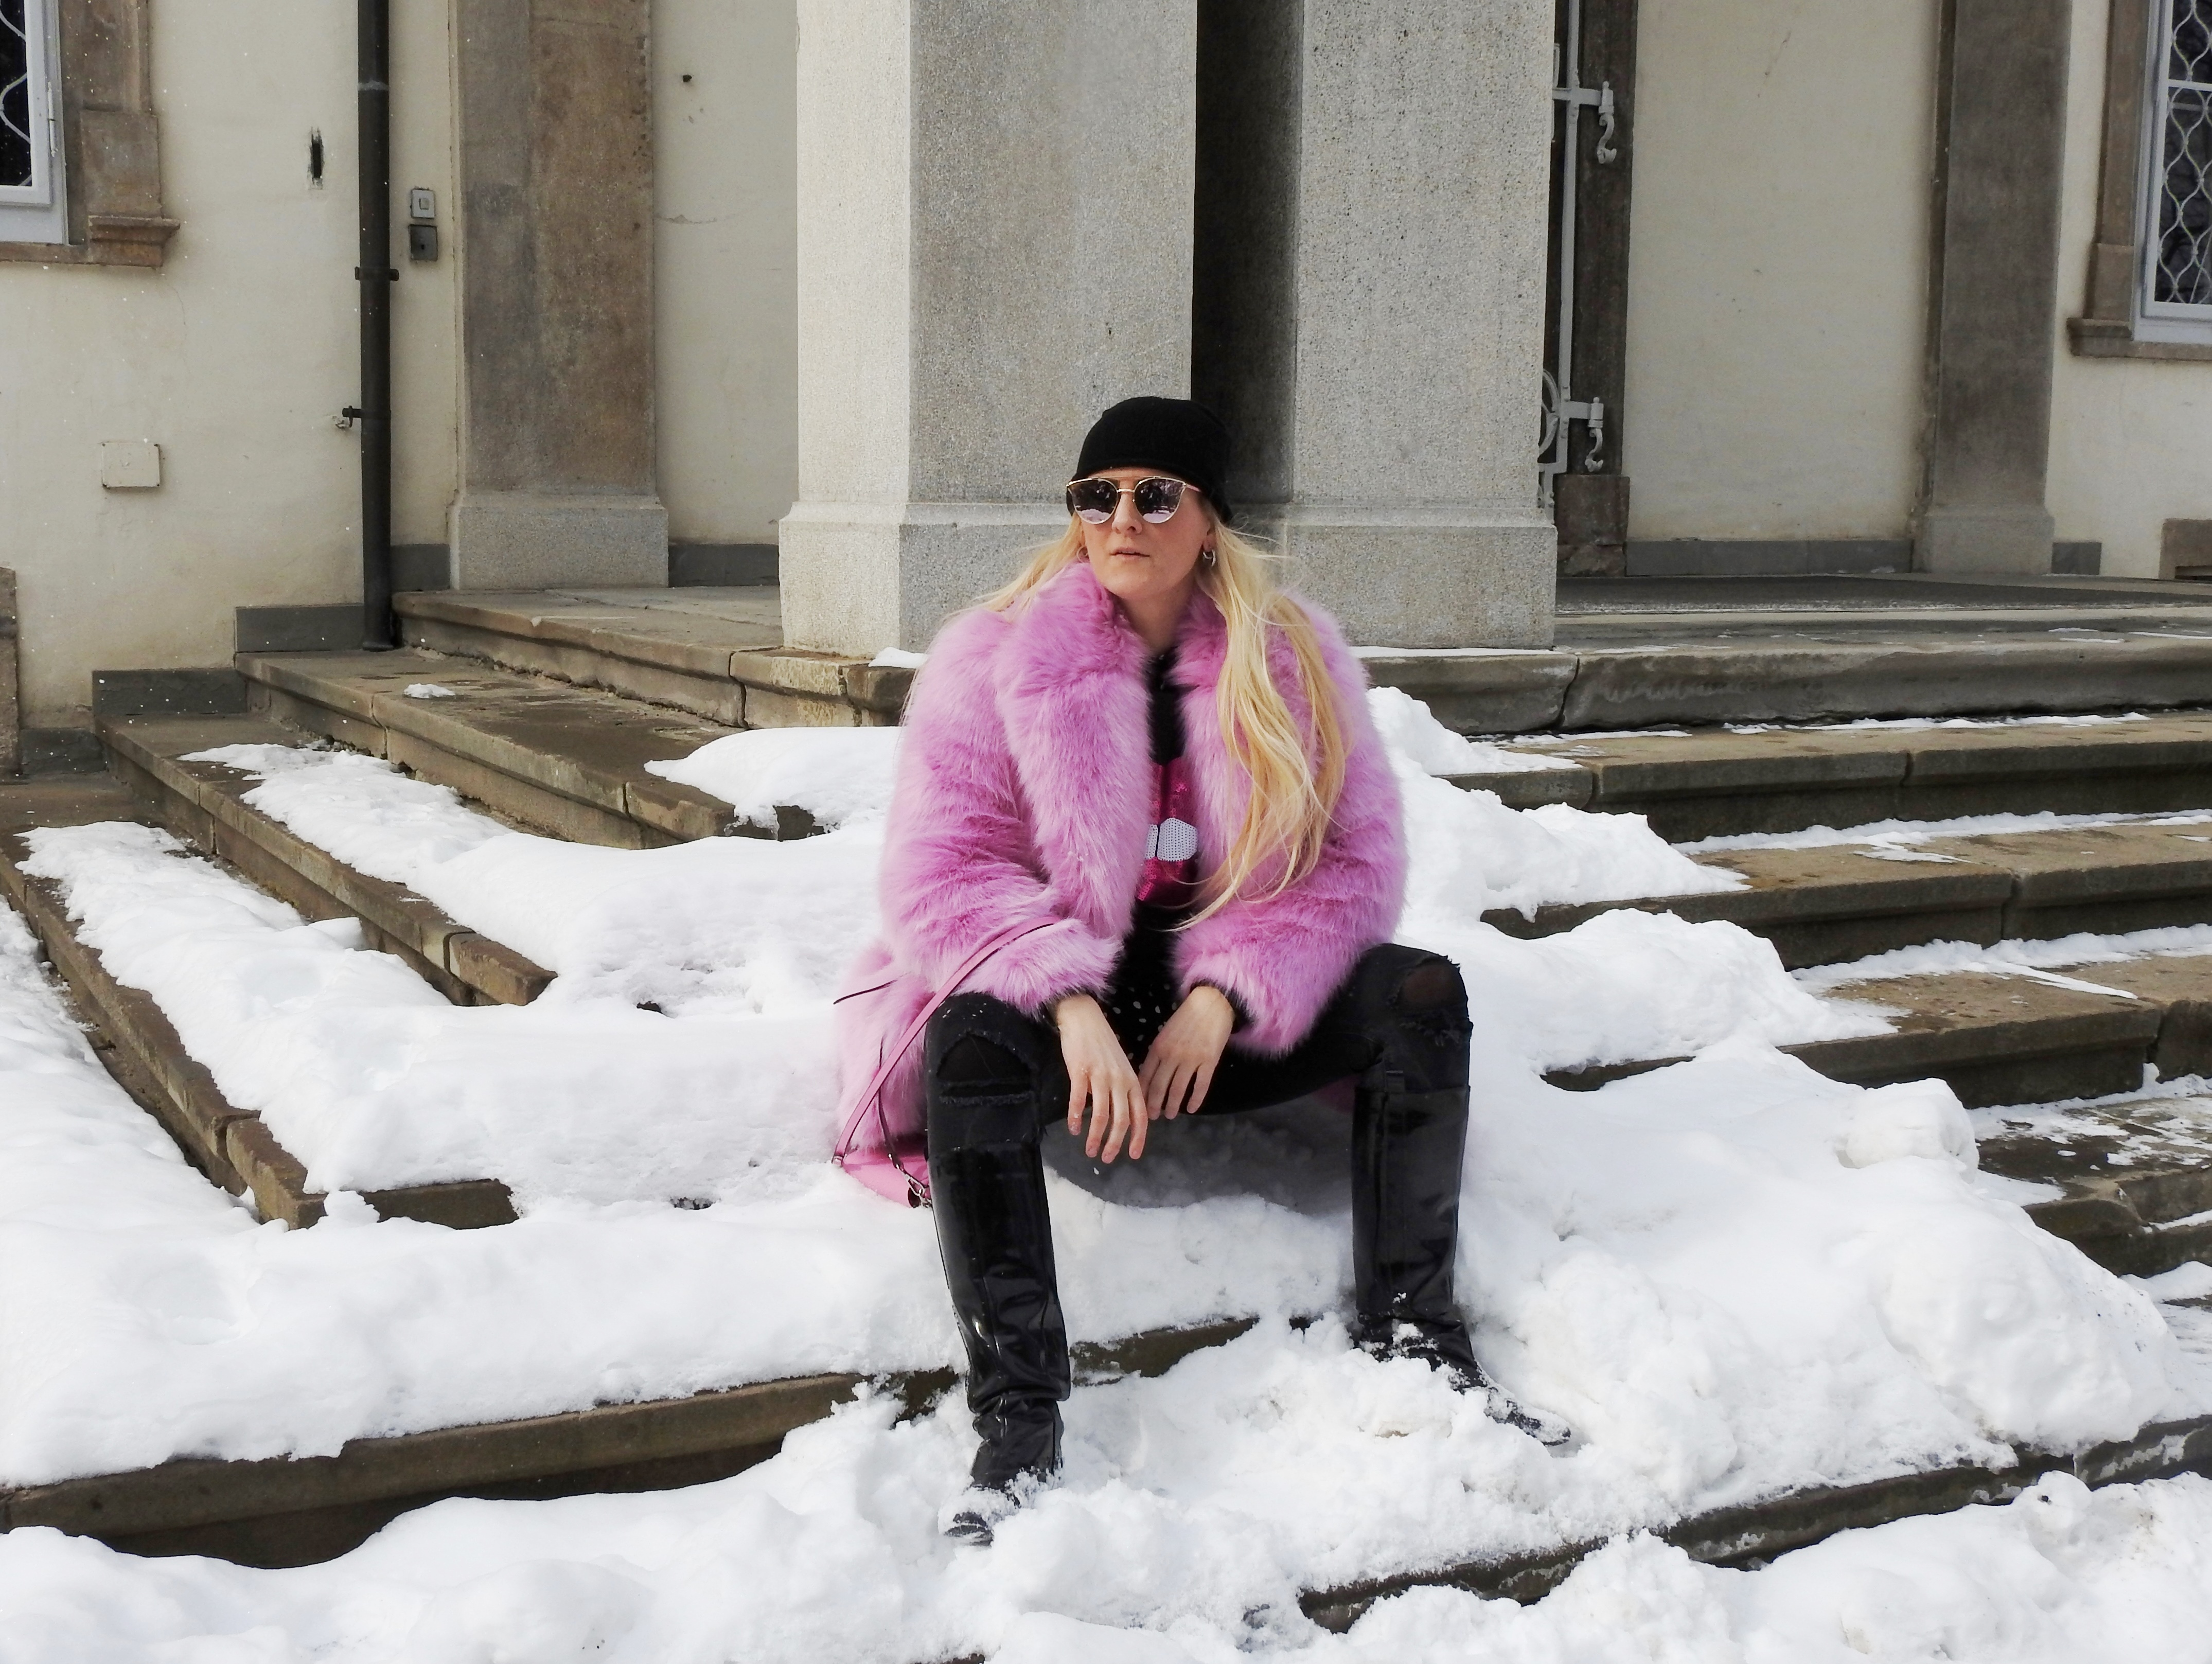 Pink-Fake-Fur-Coat-Faux-Fur-H&M-Patent-Leather-Boots-Black-Denim-Black-Metallic-Sunglasses-carrieslifestyle-Tamara-Prutsch